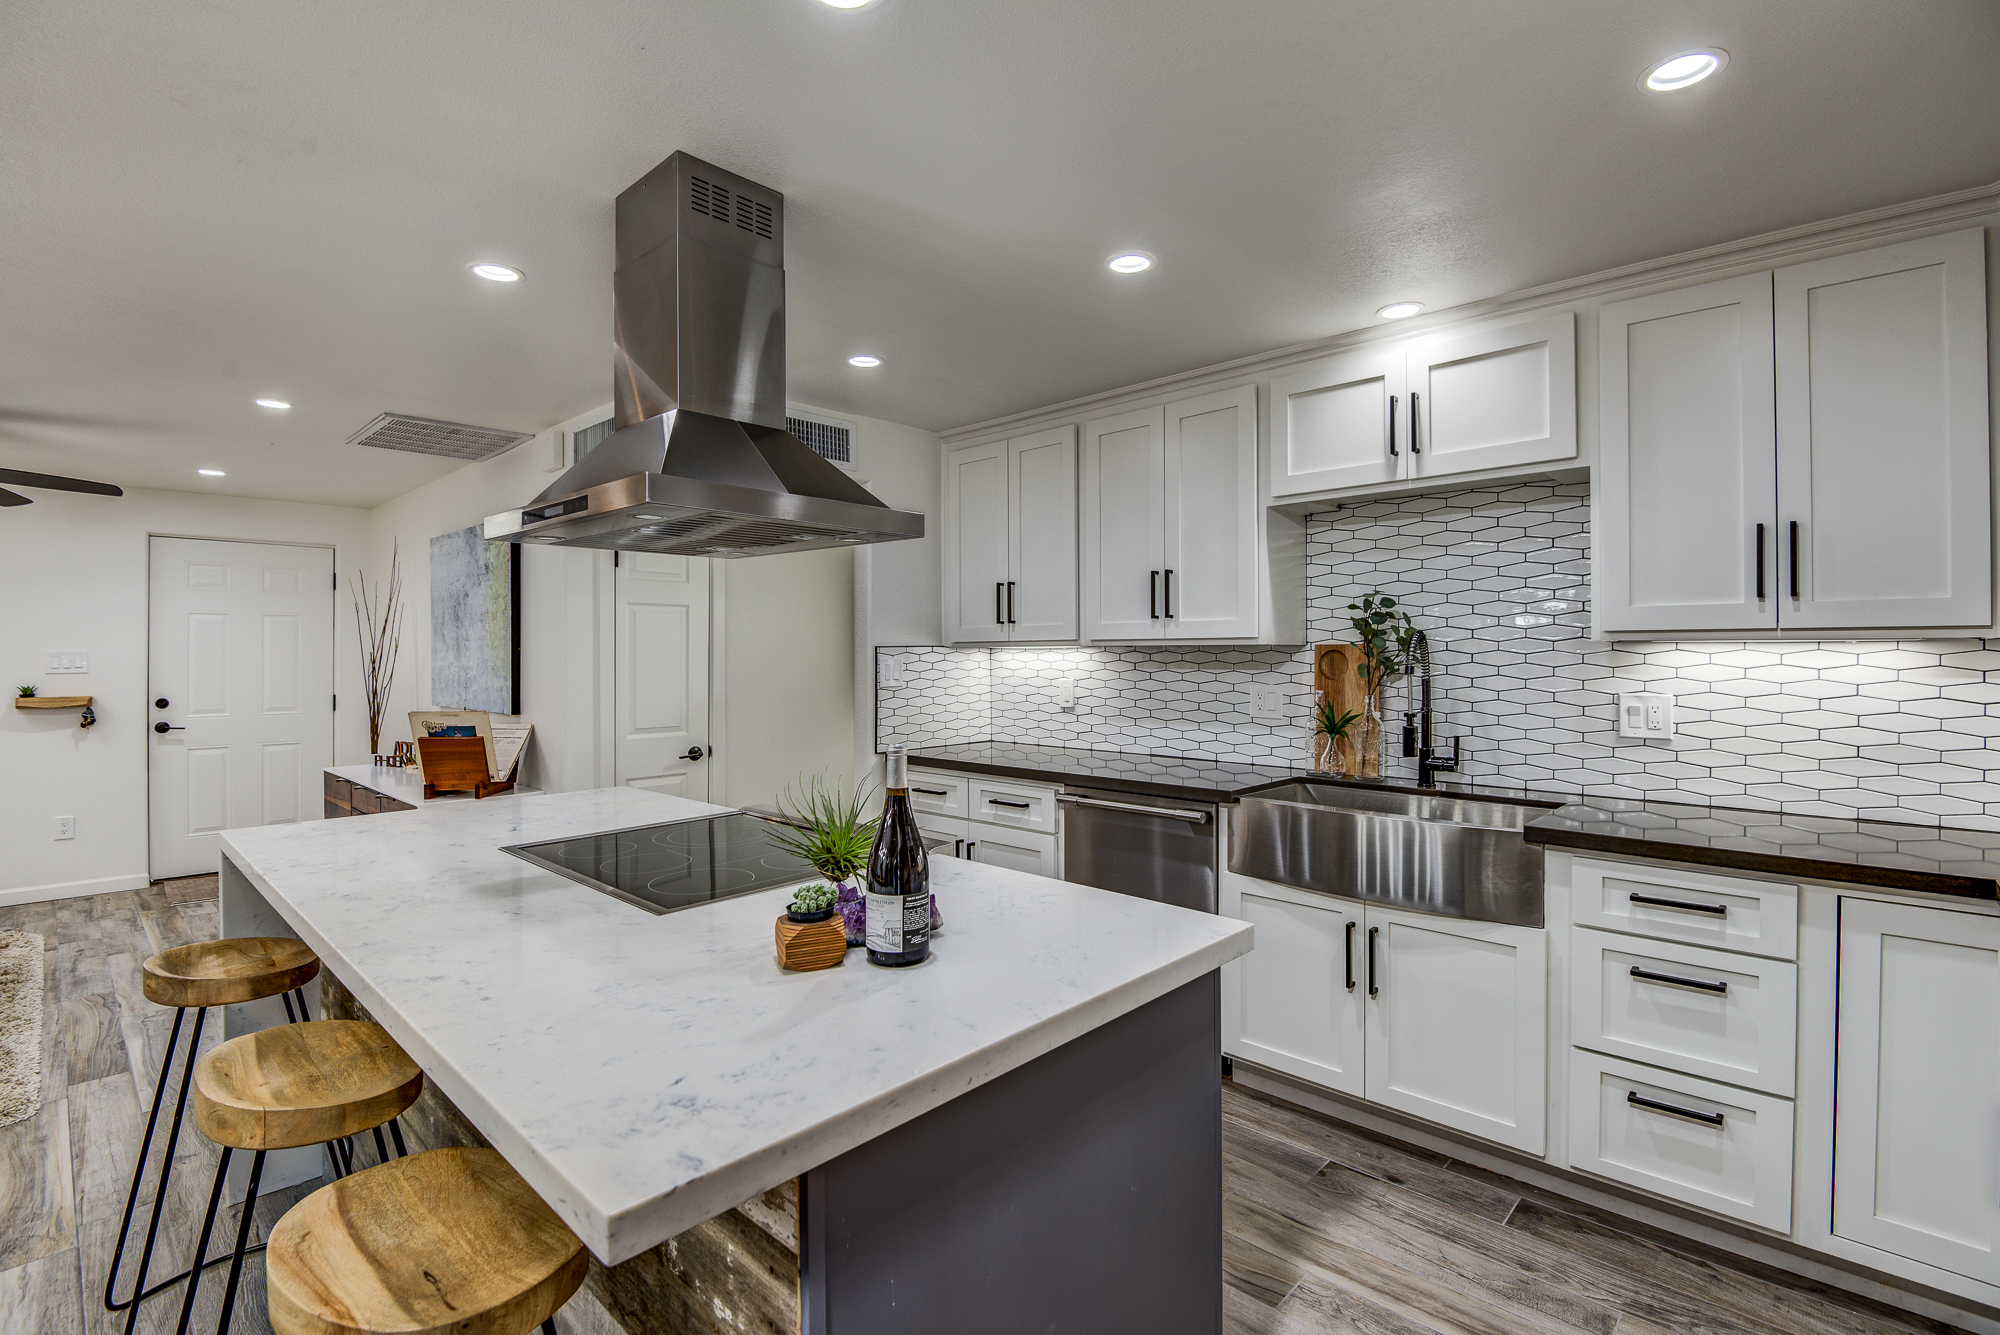 North Phoenix Remodels | Lugo & Co. at My Home Group | Designed by The Corridor